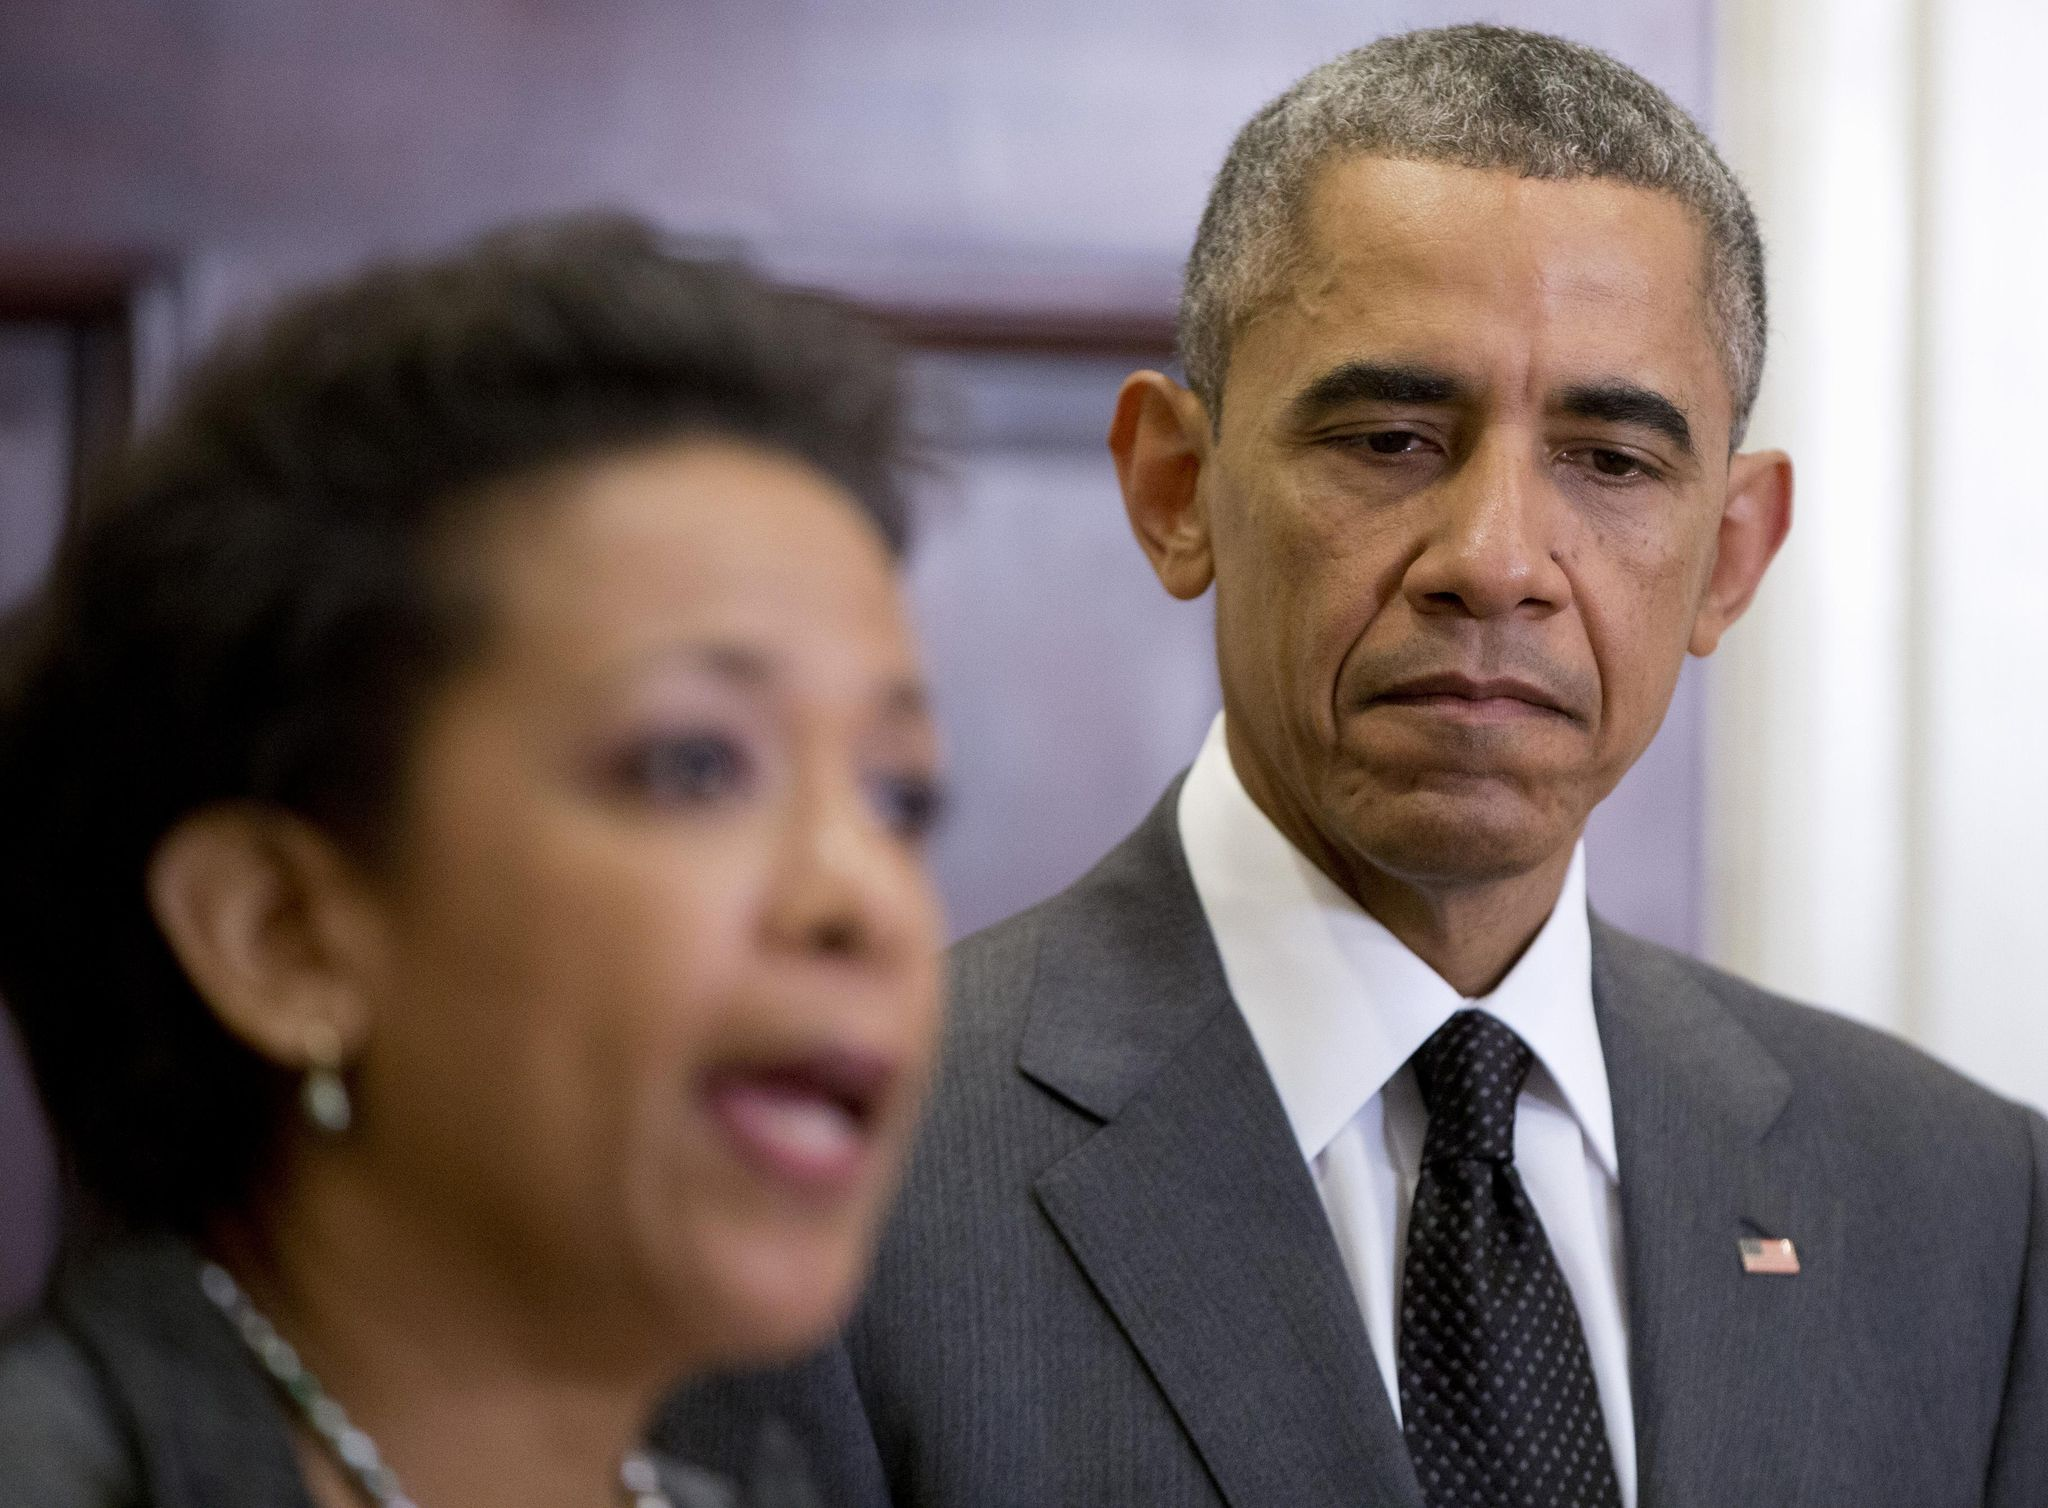 Obama's Justice Dept. feuded with FBI, agents quit as politics played larger role